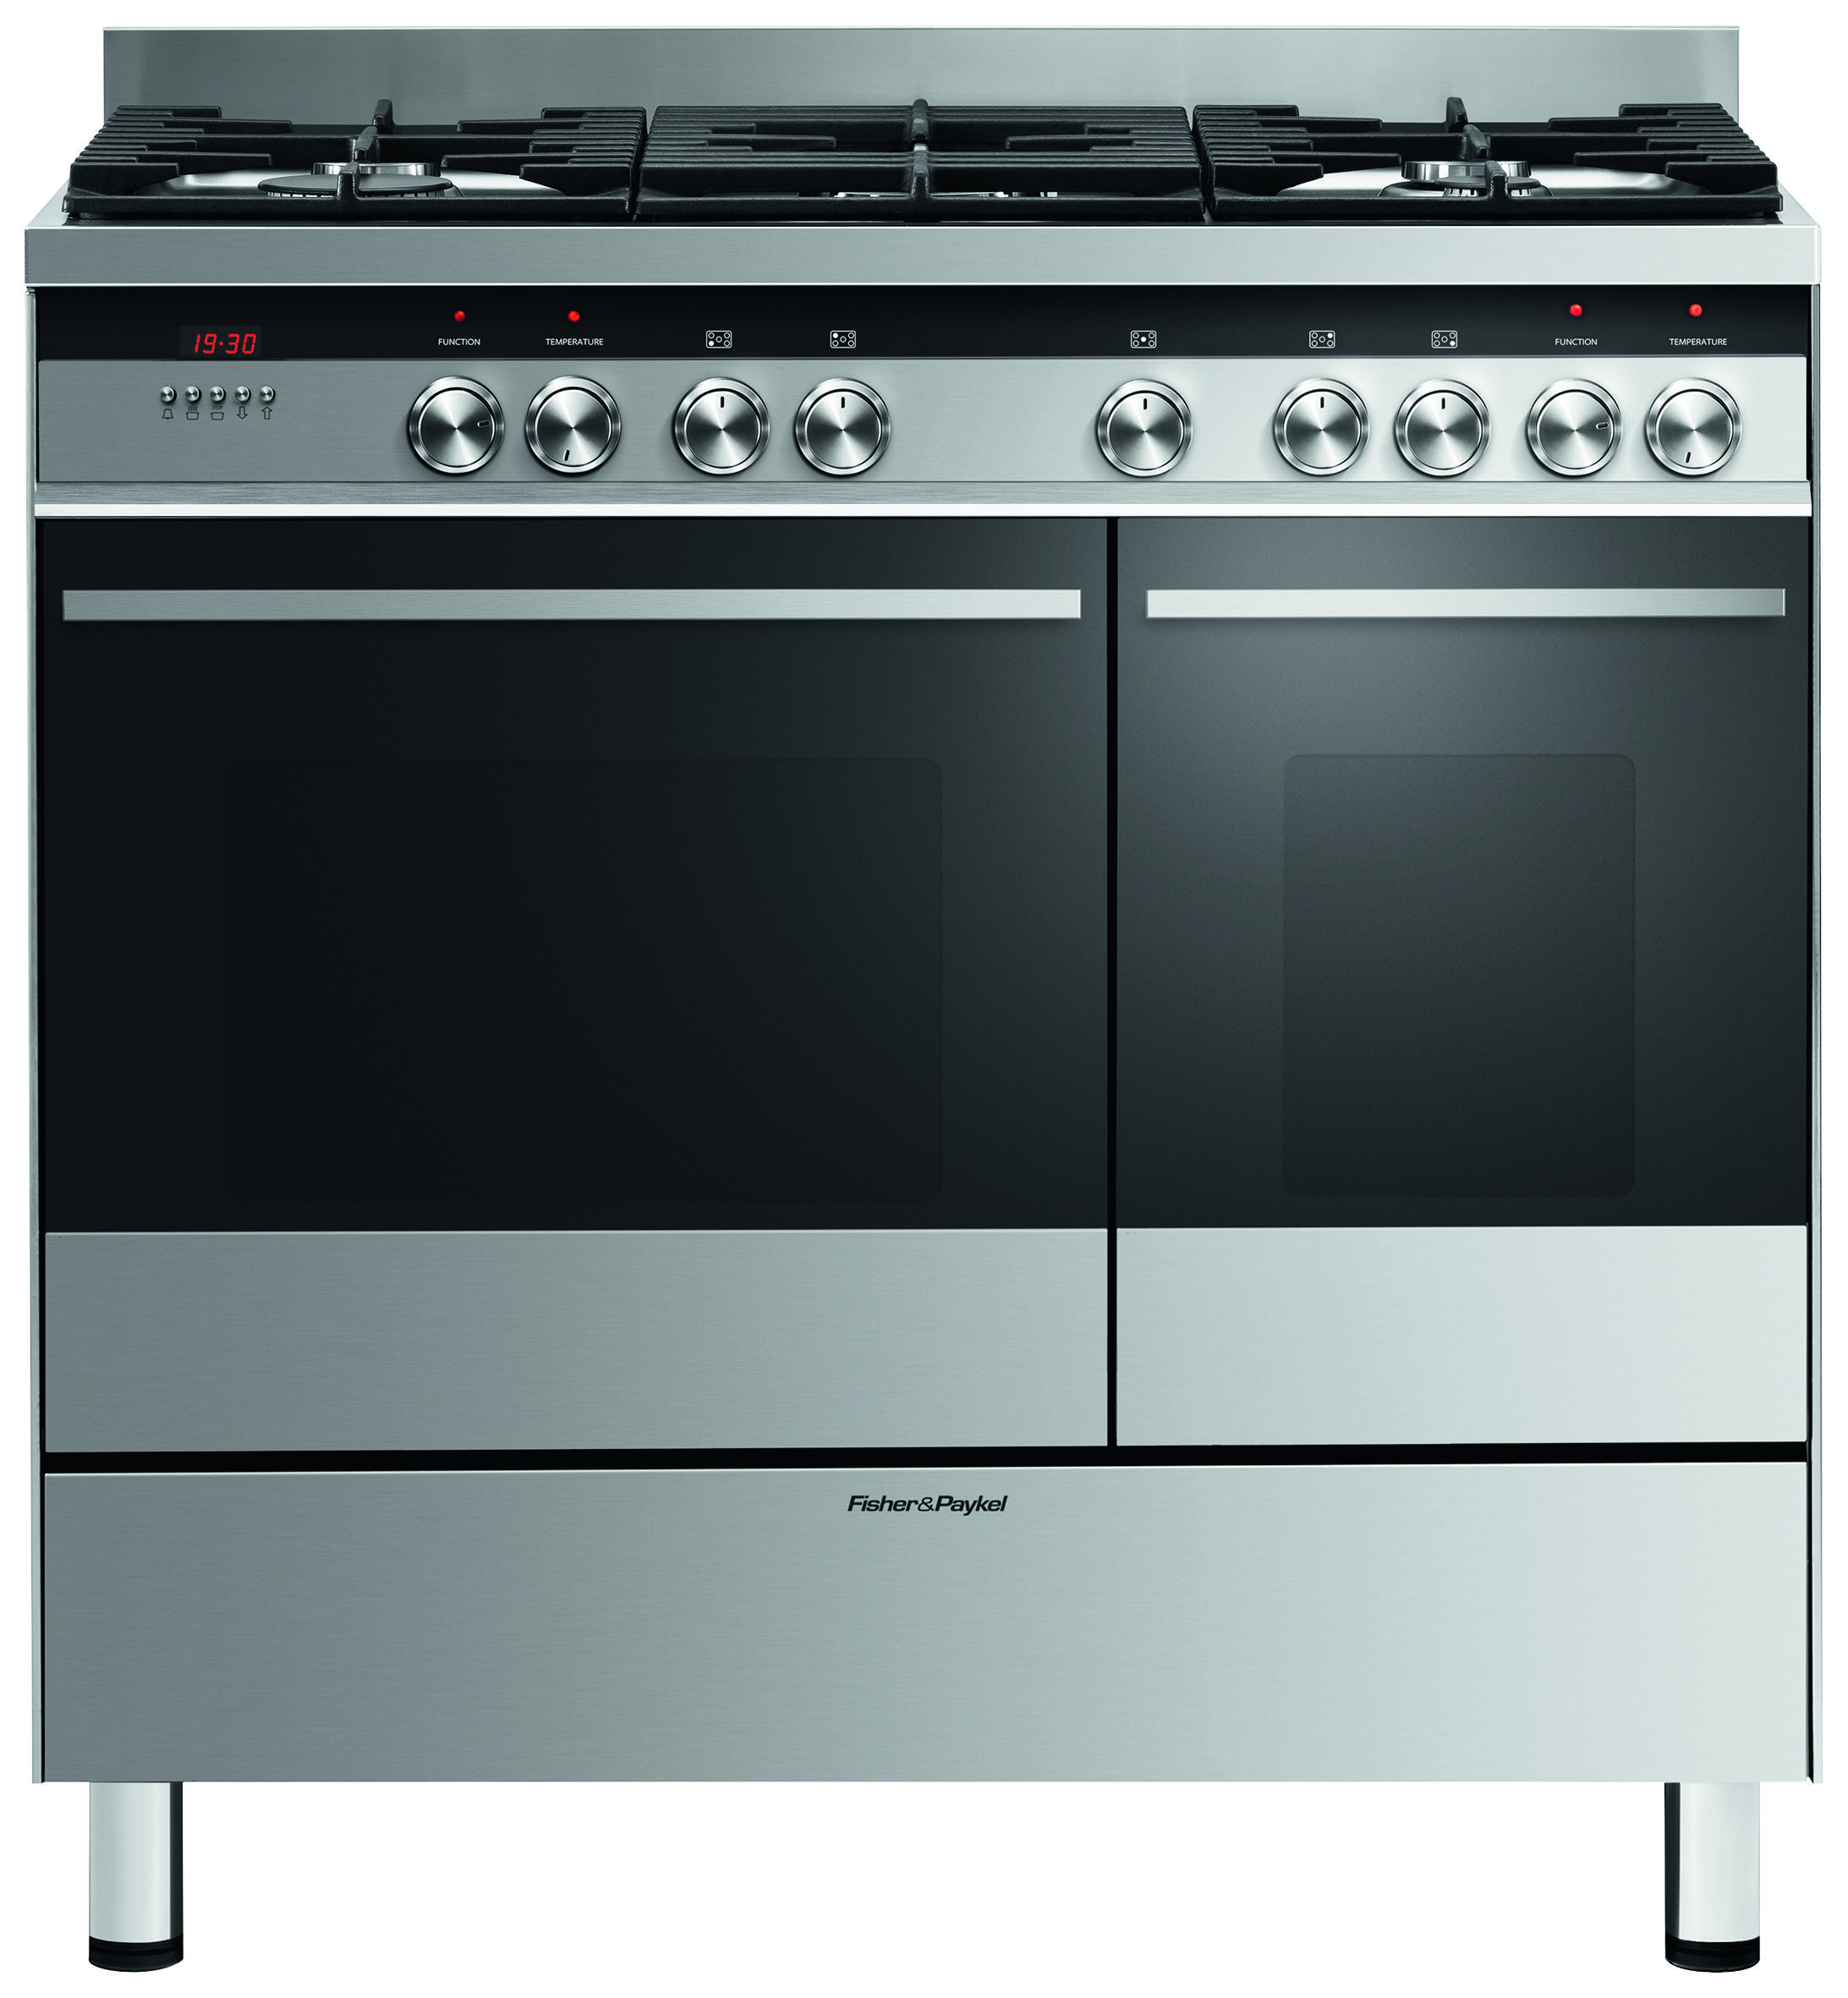 Freestanding Cooker, 90cm, Dual Fuel OR90L7DBGFX1. With a large gas ...